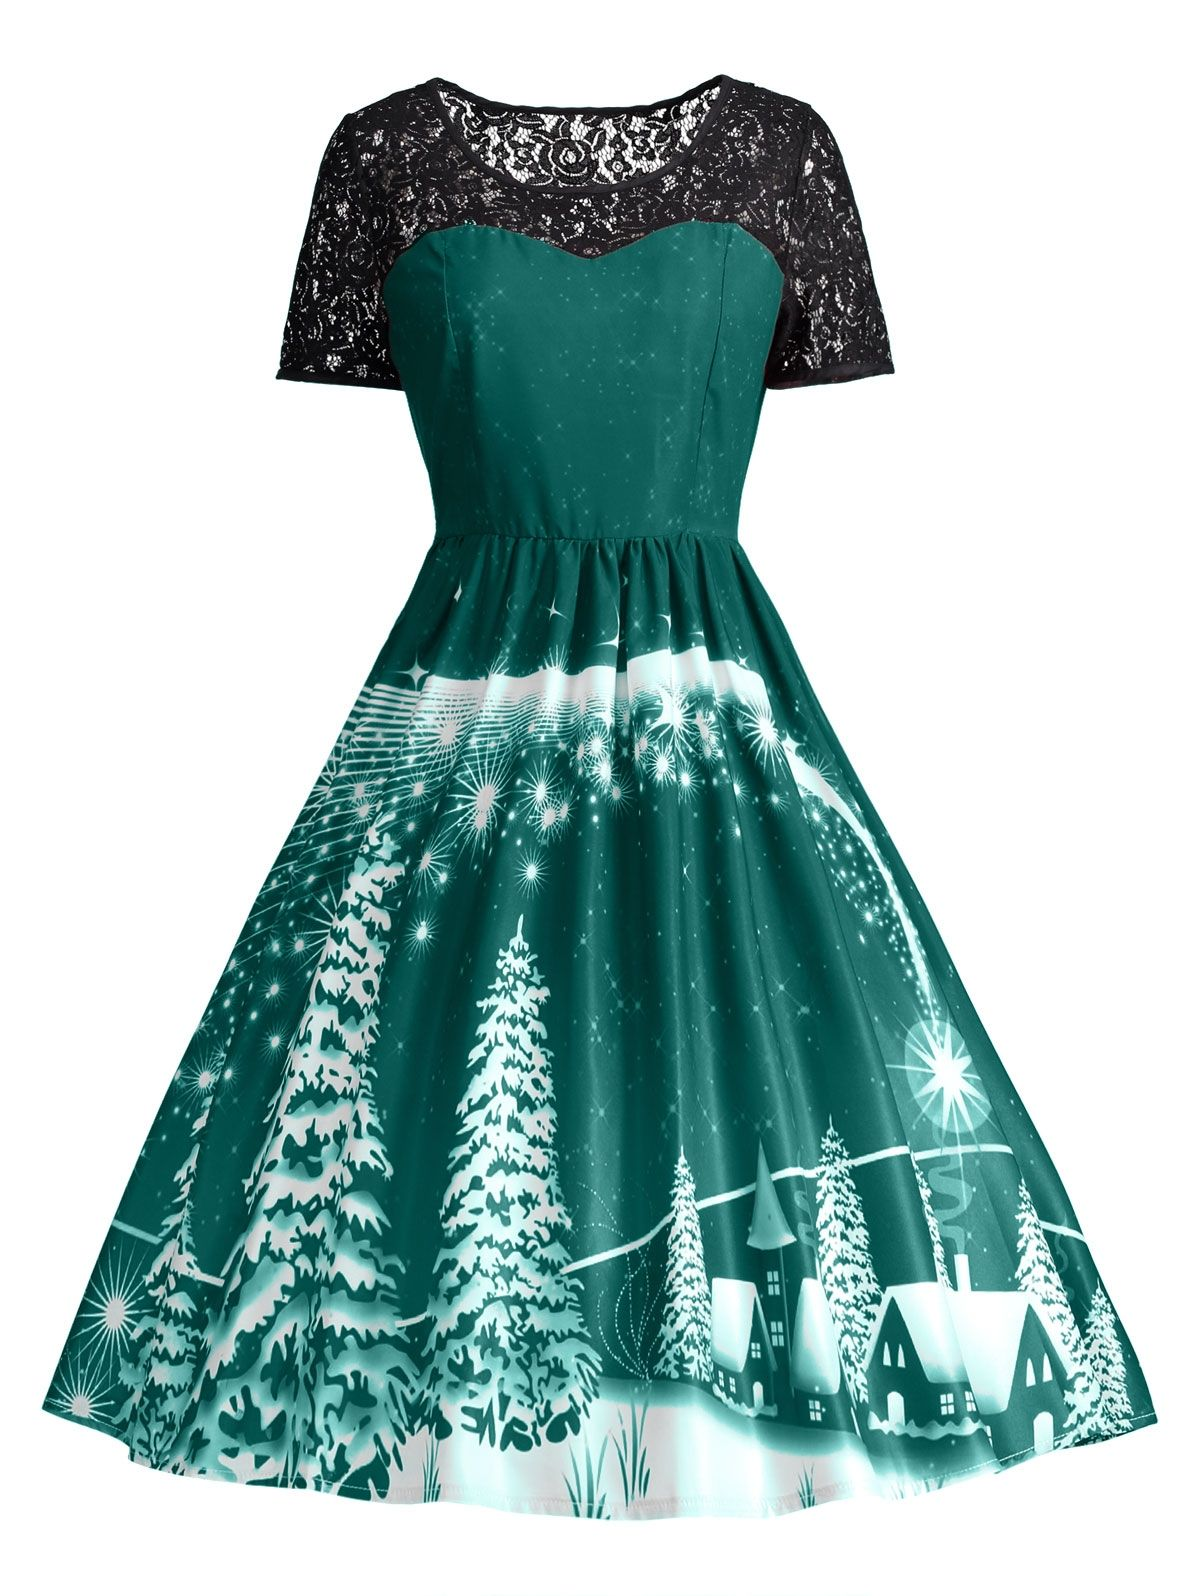 DRESSFO Women Ugly Christmas Party Lace Panel Vintage Dress - Red ...